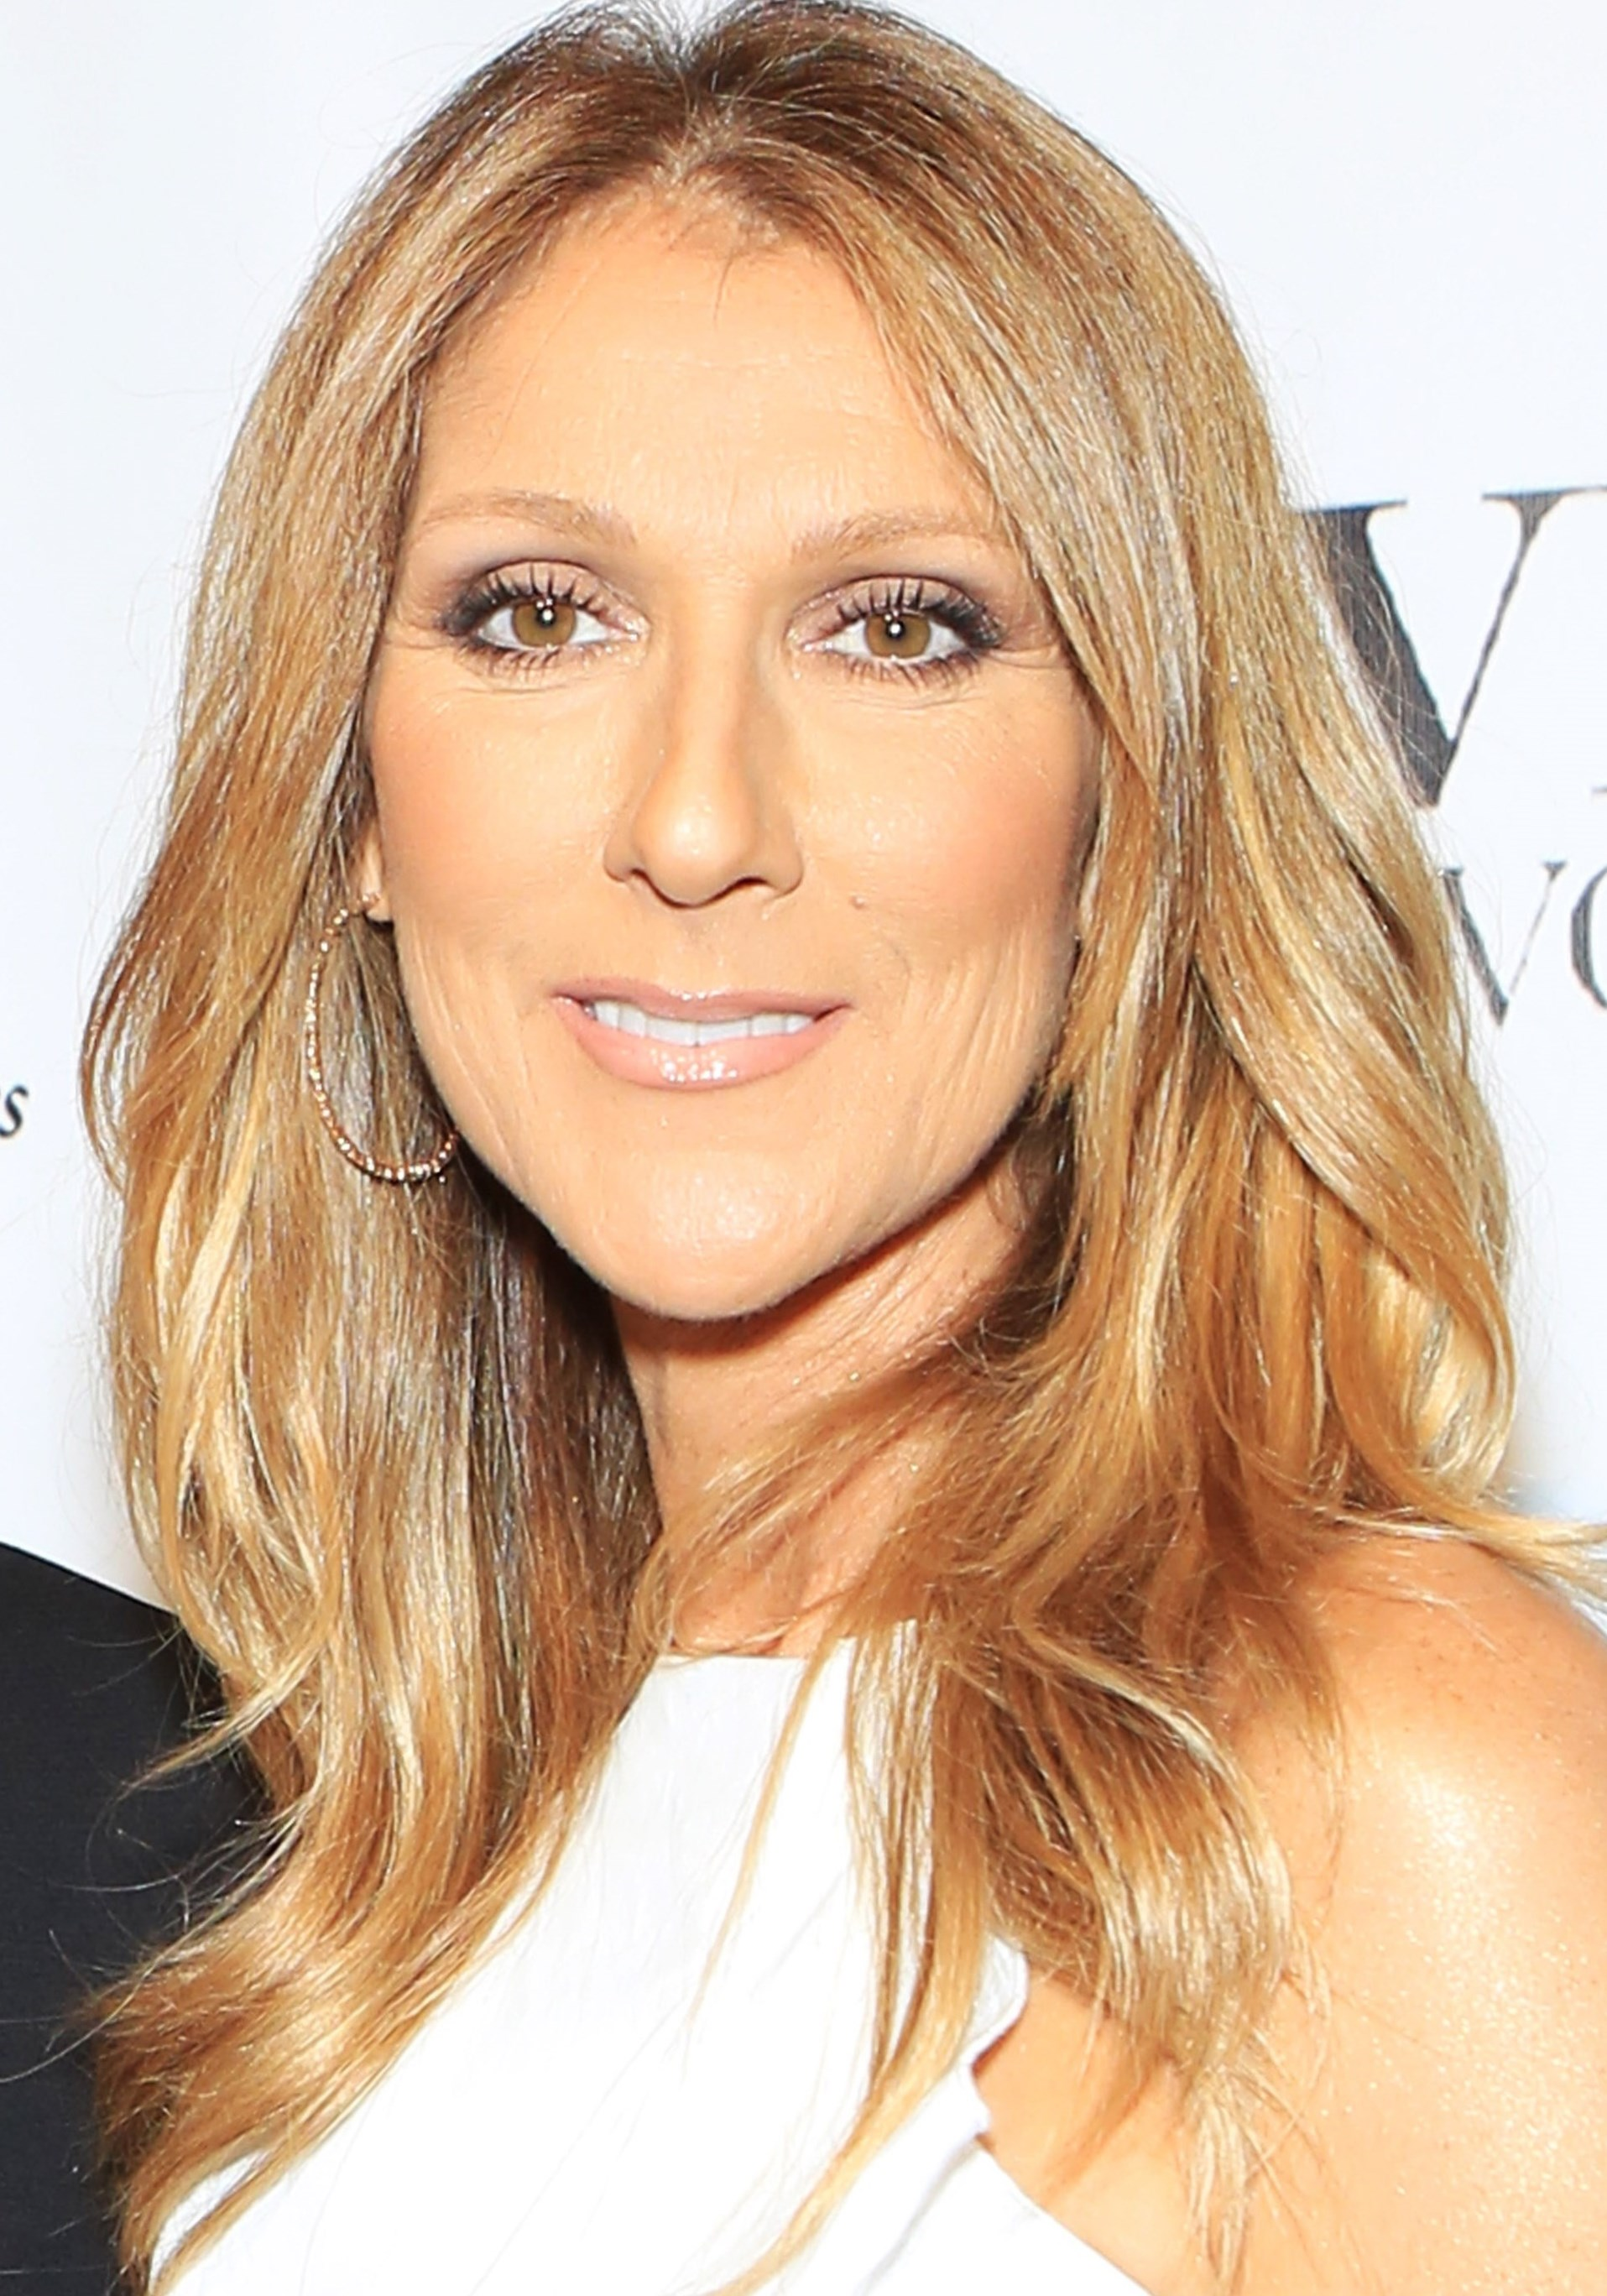 Celine Dion Weight Height And Age We Know It All